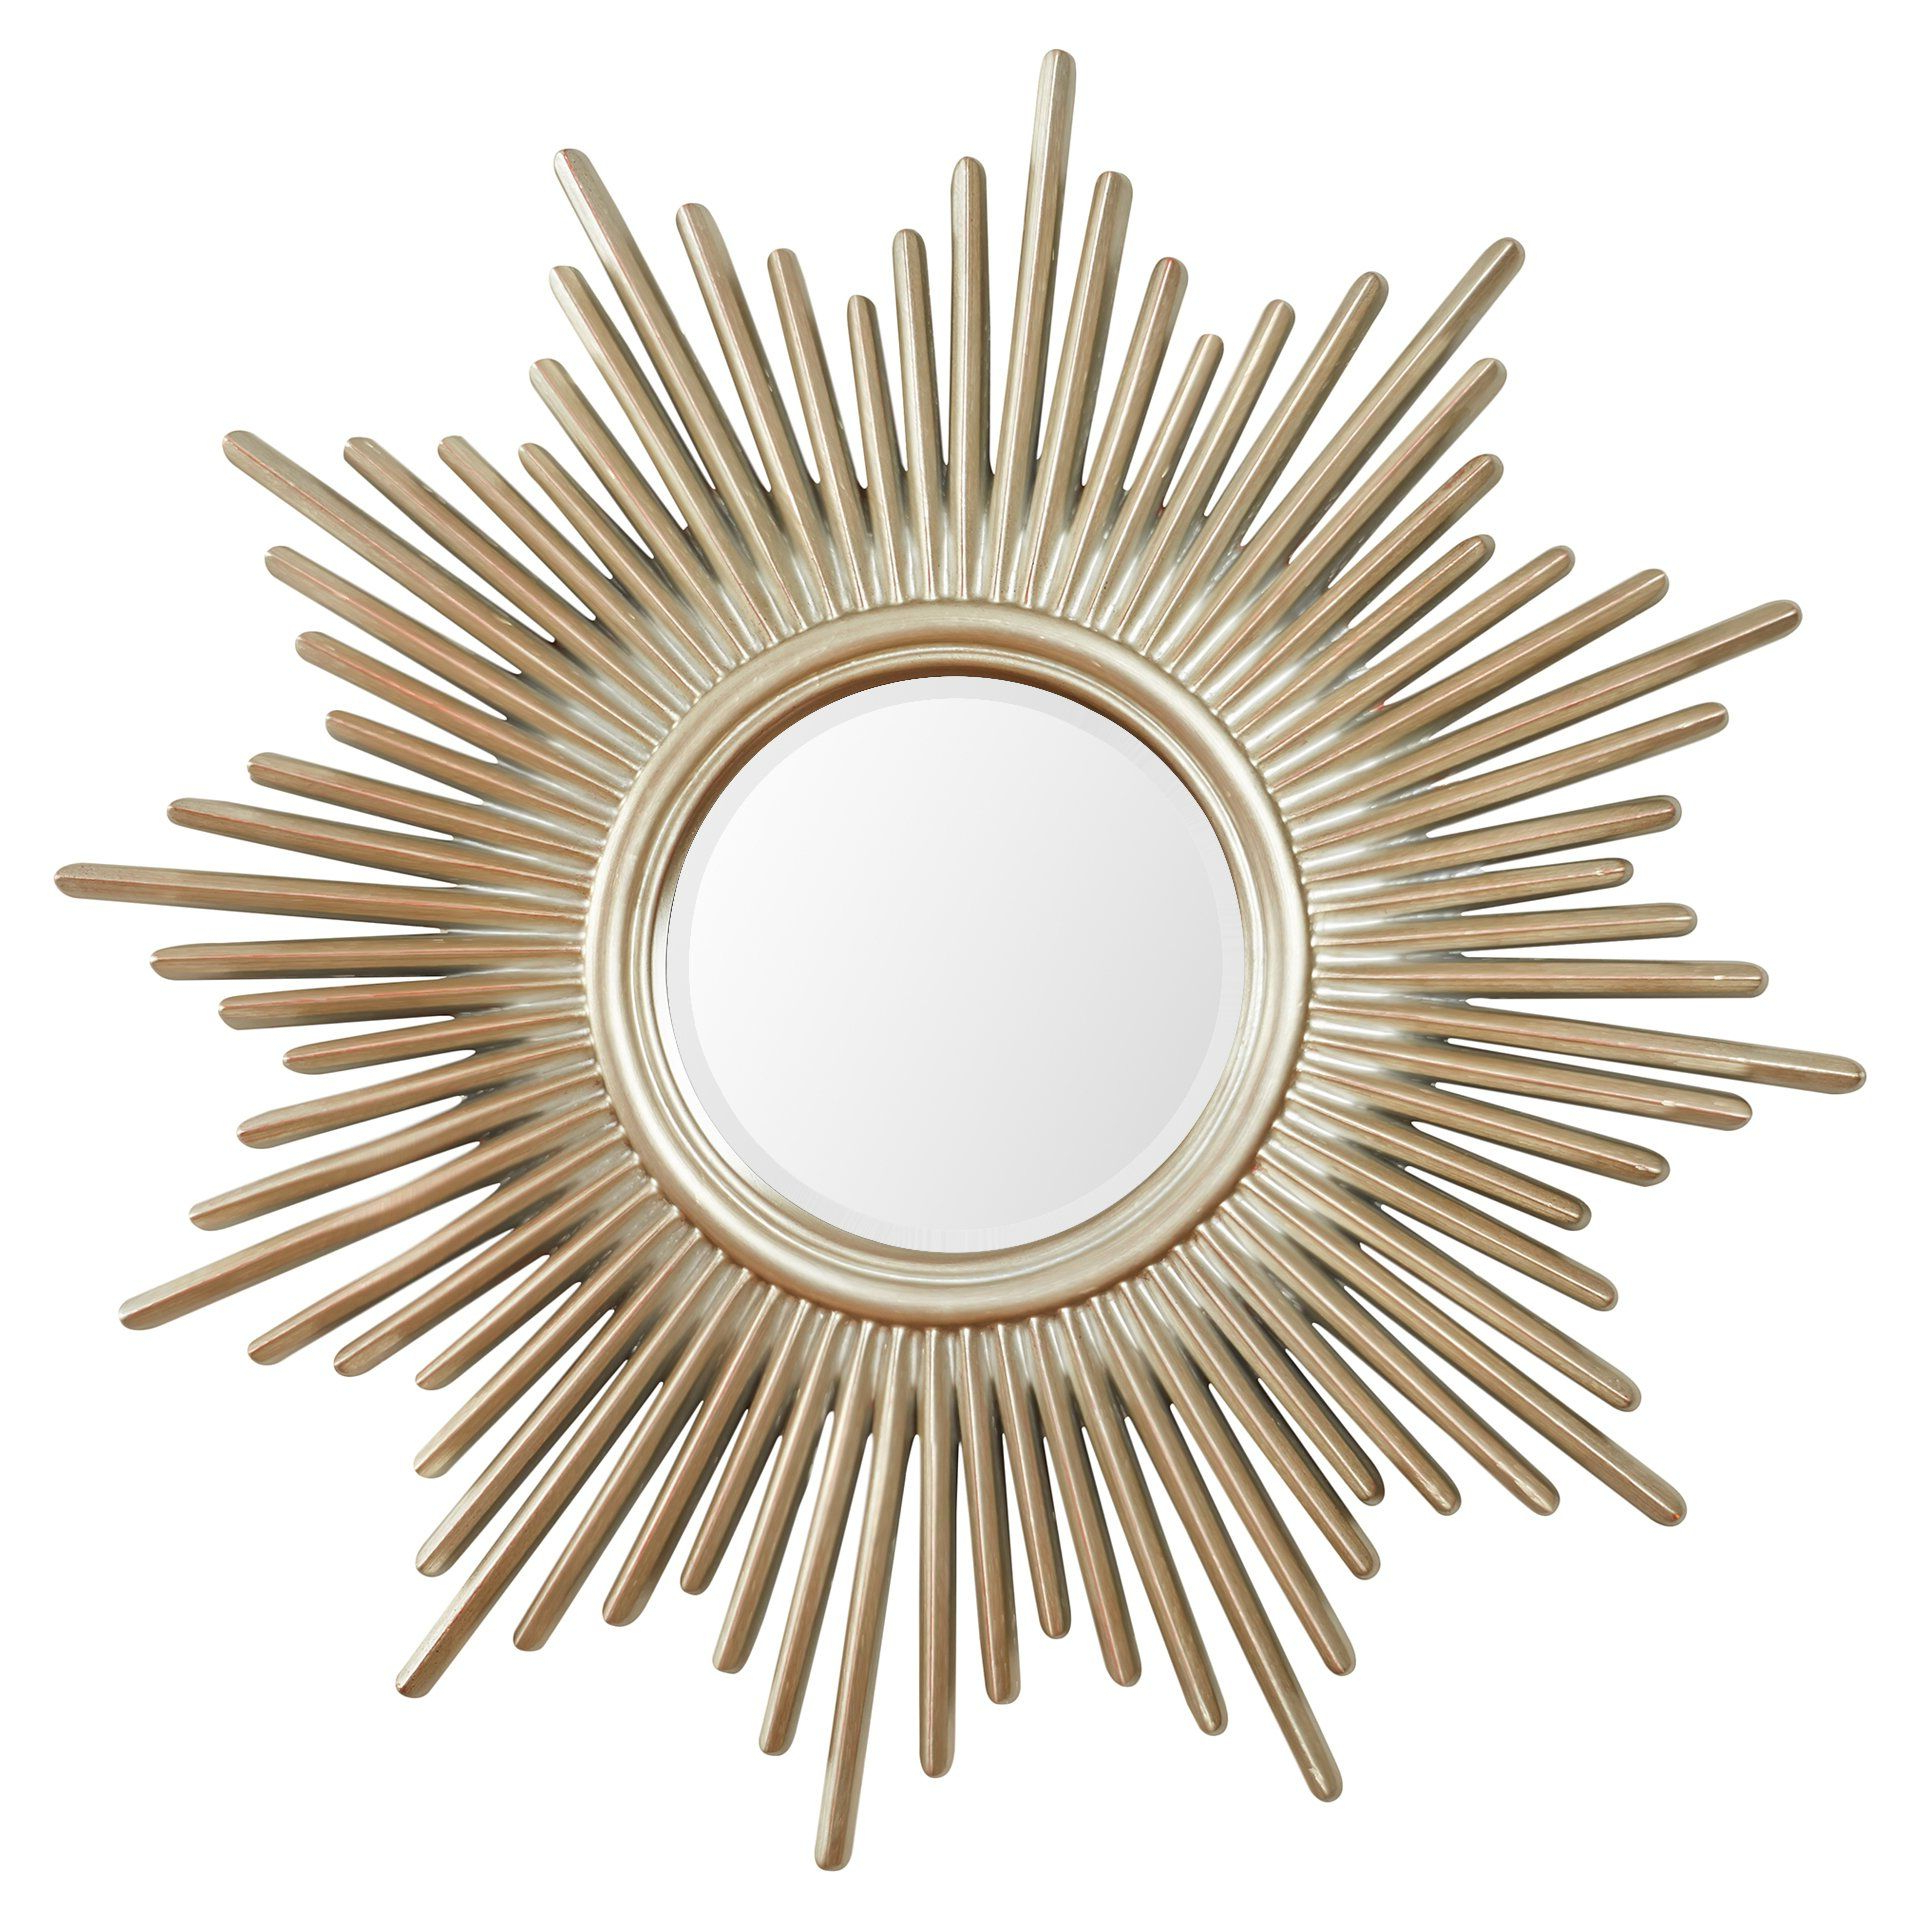 Josephson Starburst Glam Beveled Accent Wall Mirror (Gallery 5 of 20)